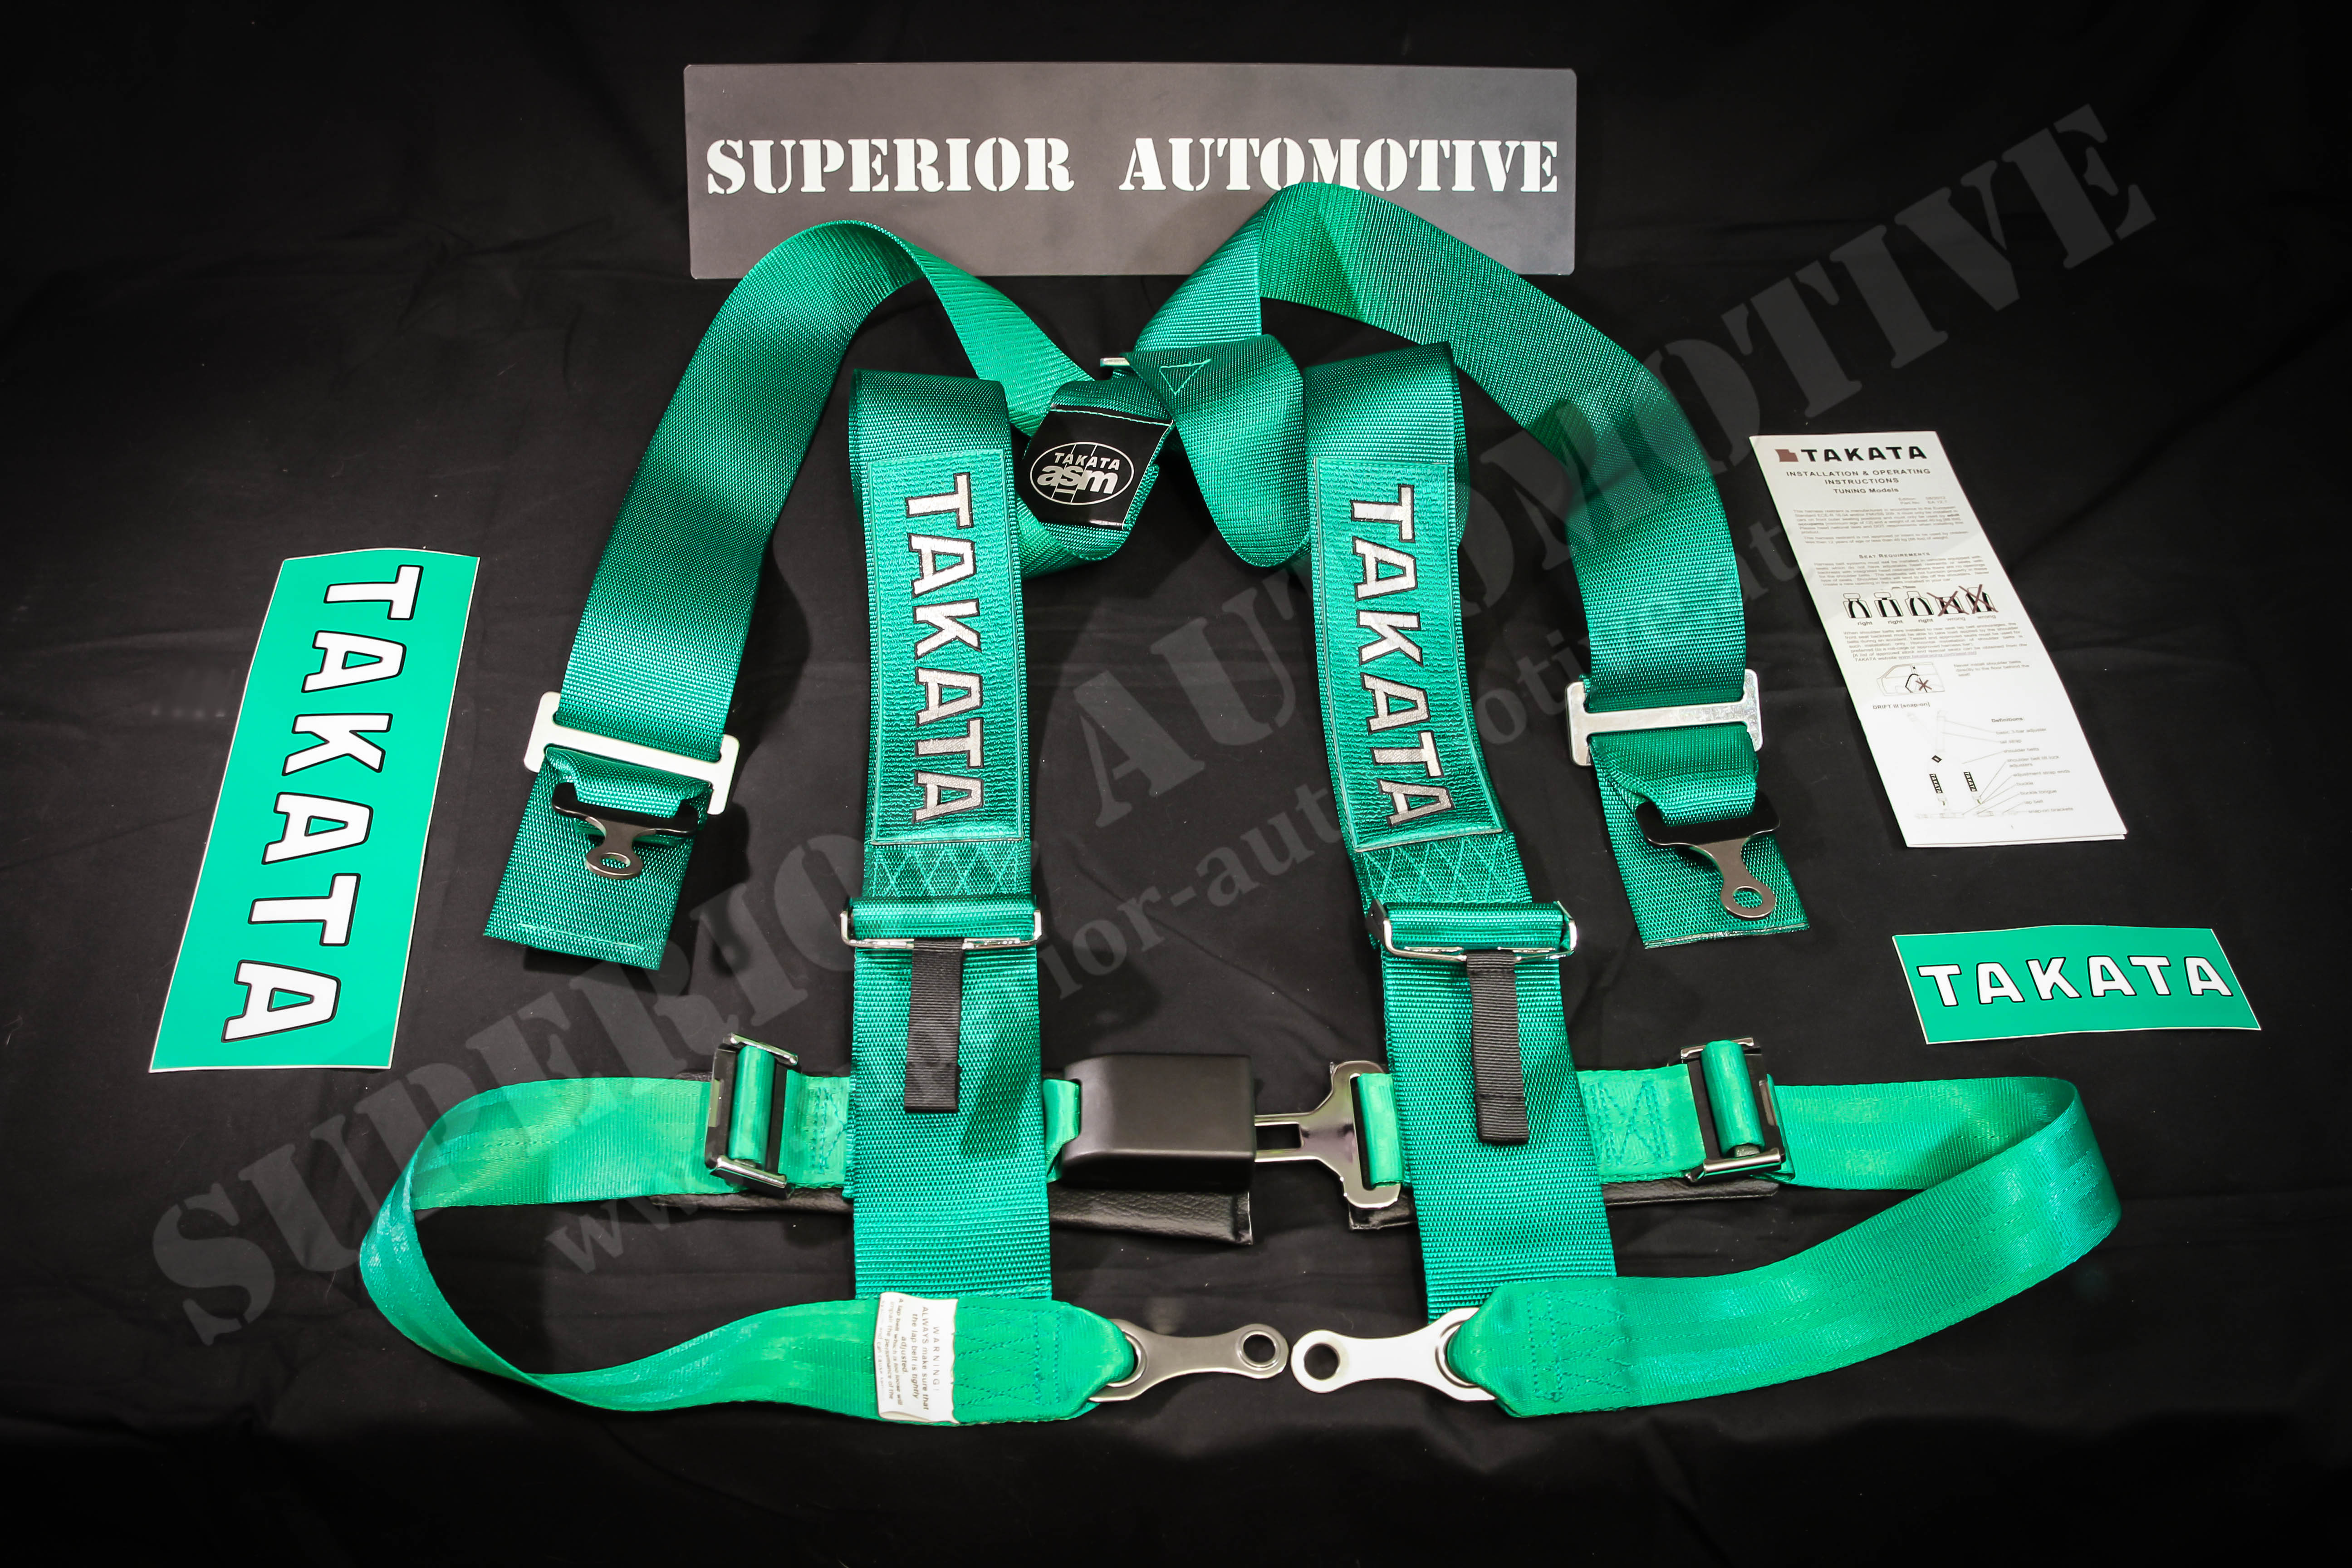 Sinh Nguyen Nismo Z besides 350z Racing Harnesses besides Takata Racing Harness Backpack further Franks Midnight Pornple 370z additionally Sujet379538 5190. on takata drift harness